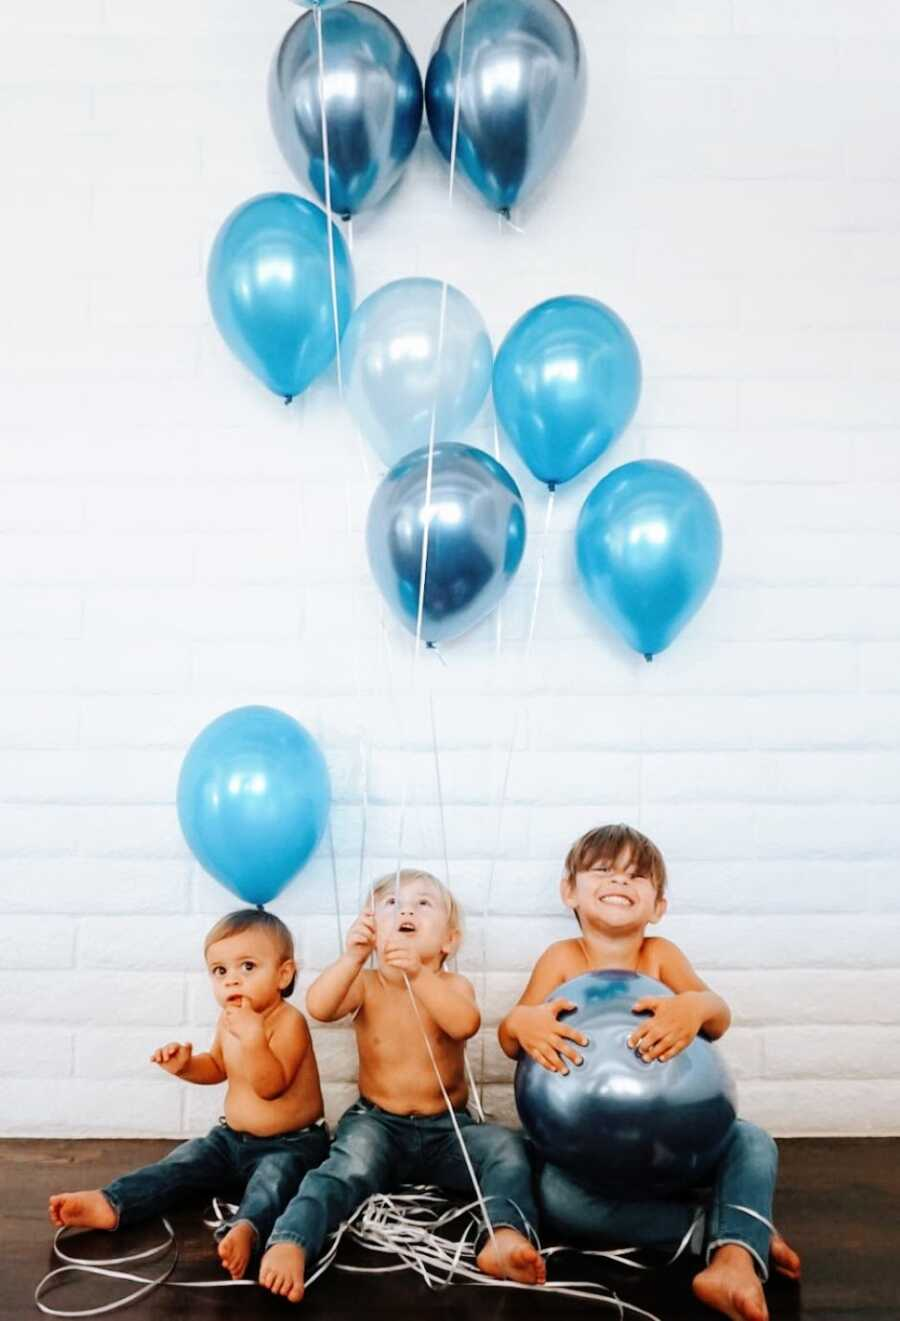 Couple expecting their fourth baby announce the gender by taking a photo of their three sons holding blue balloons